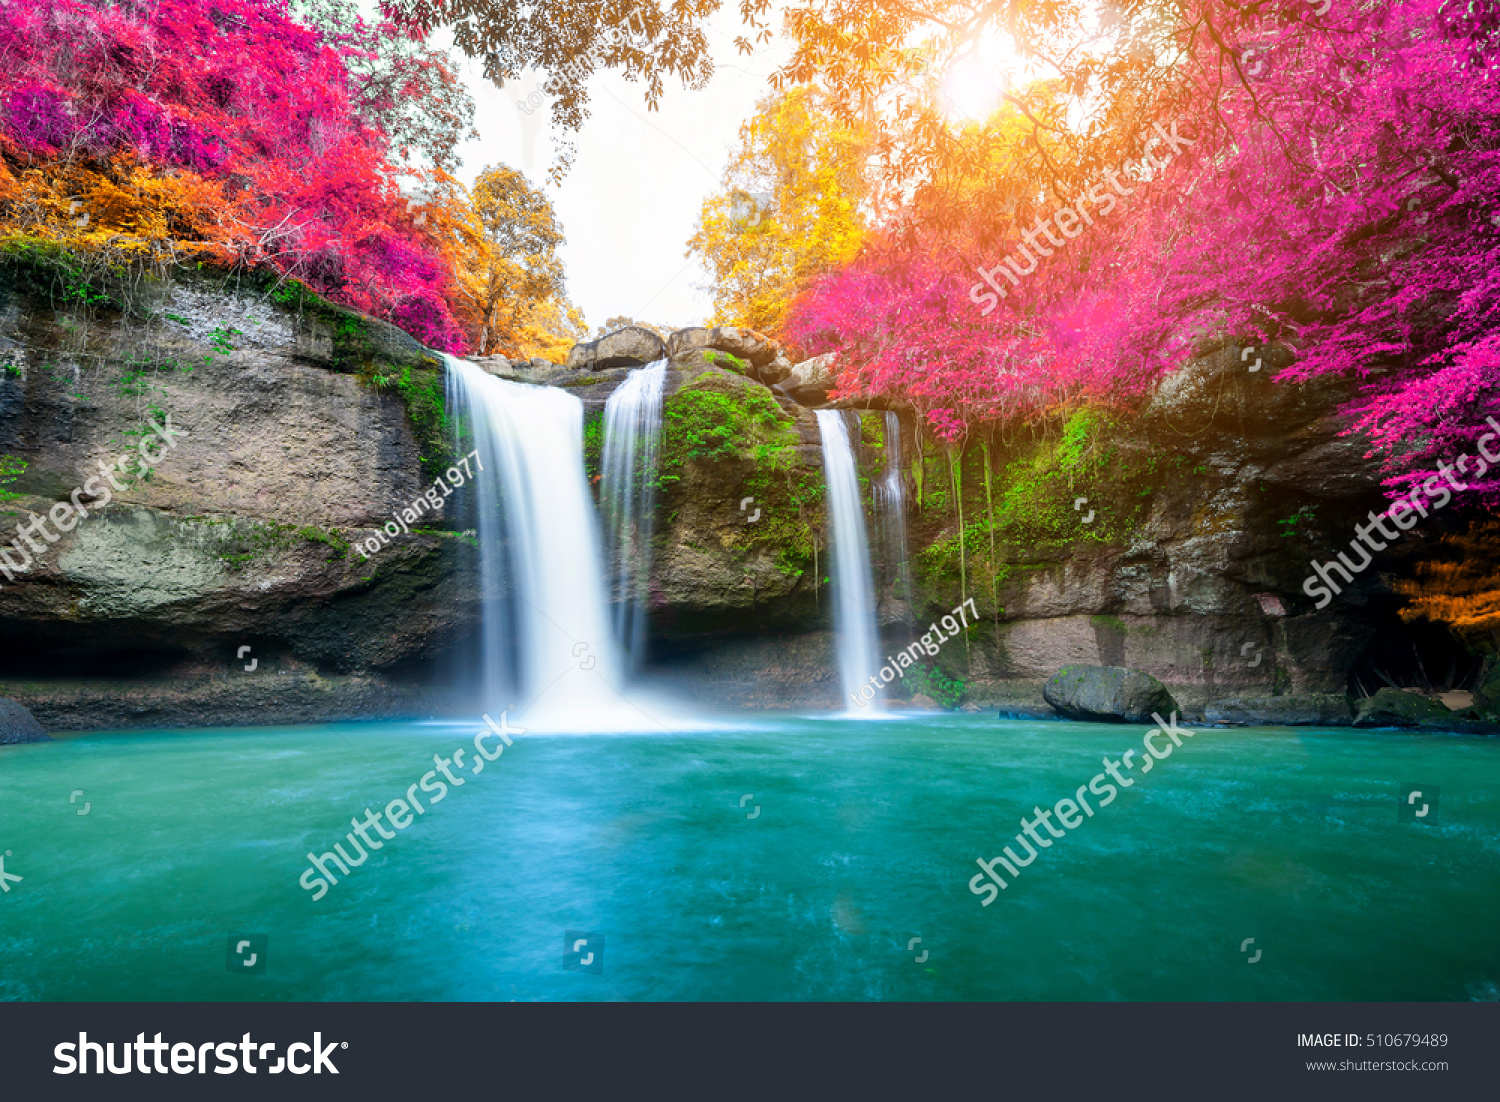 Amazing Waterfall Colorful Autumn Forest Stock Photo ... - photo#2